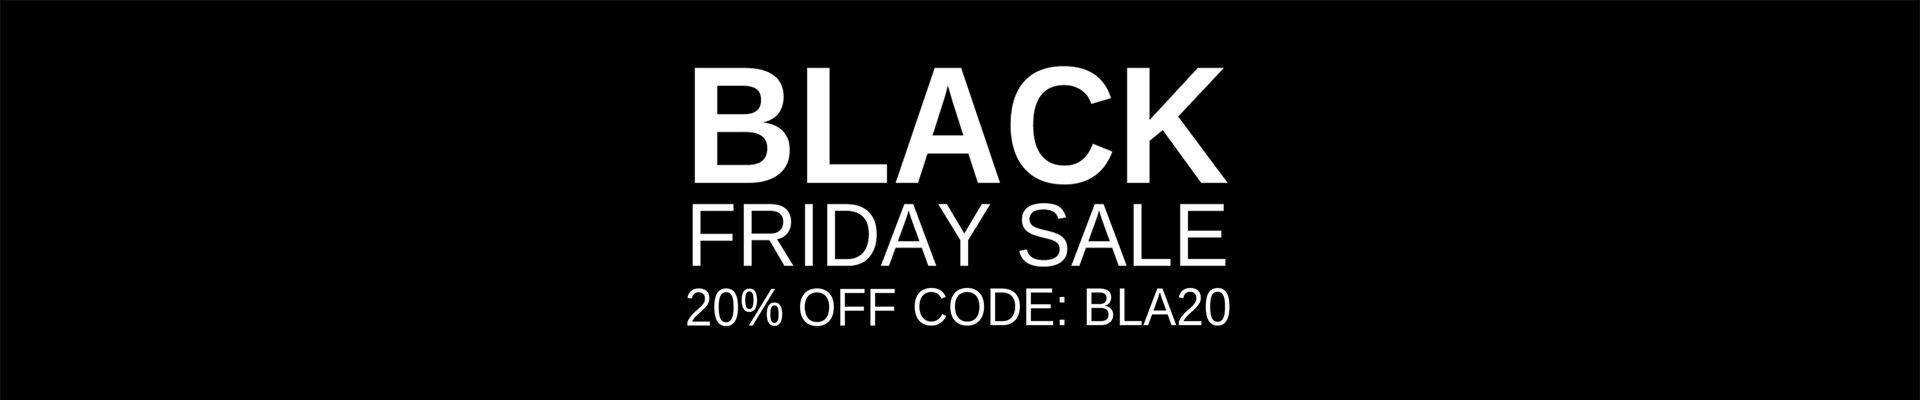 Black Friday Sale, 20% off